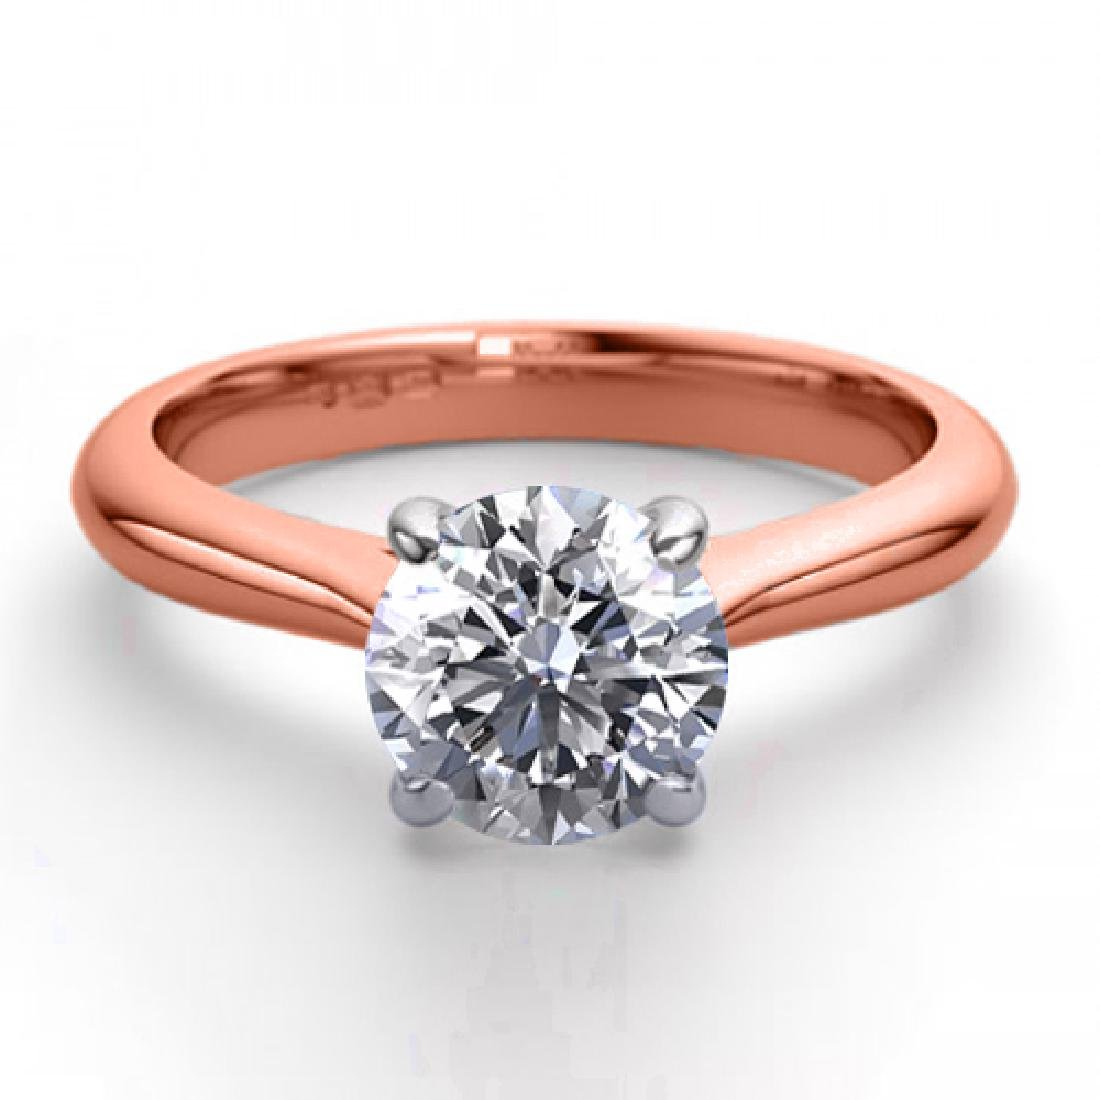 14K Rose Gold Jewelry 1.52 ctw Natural Diamond